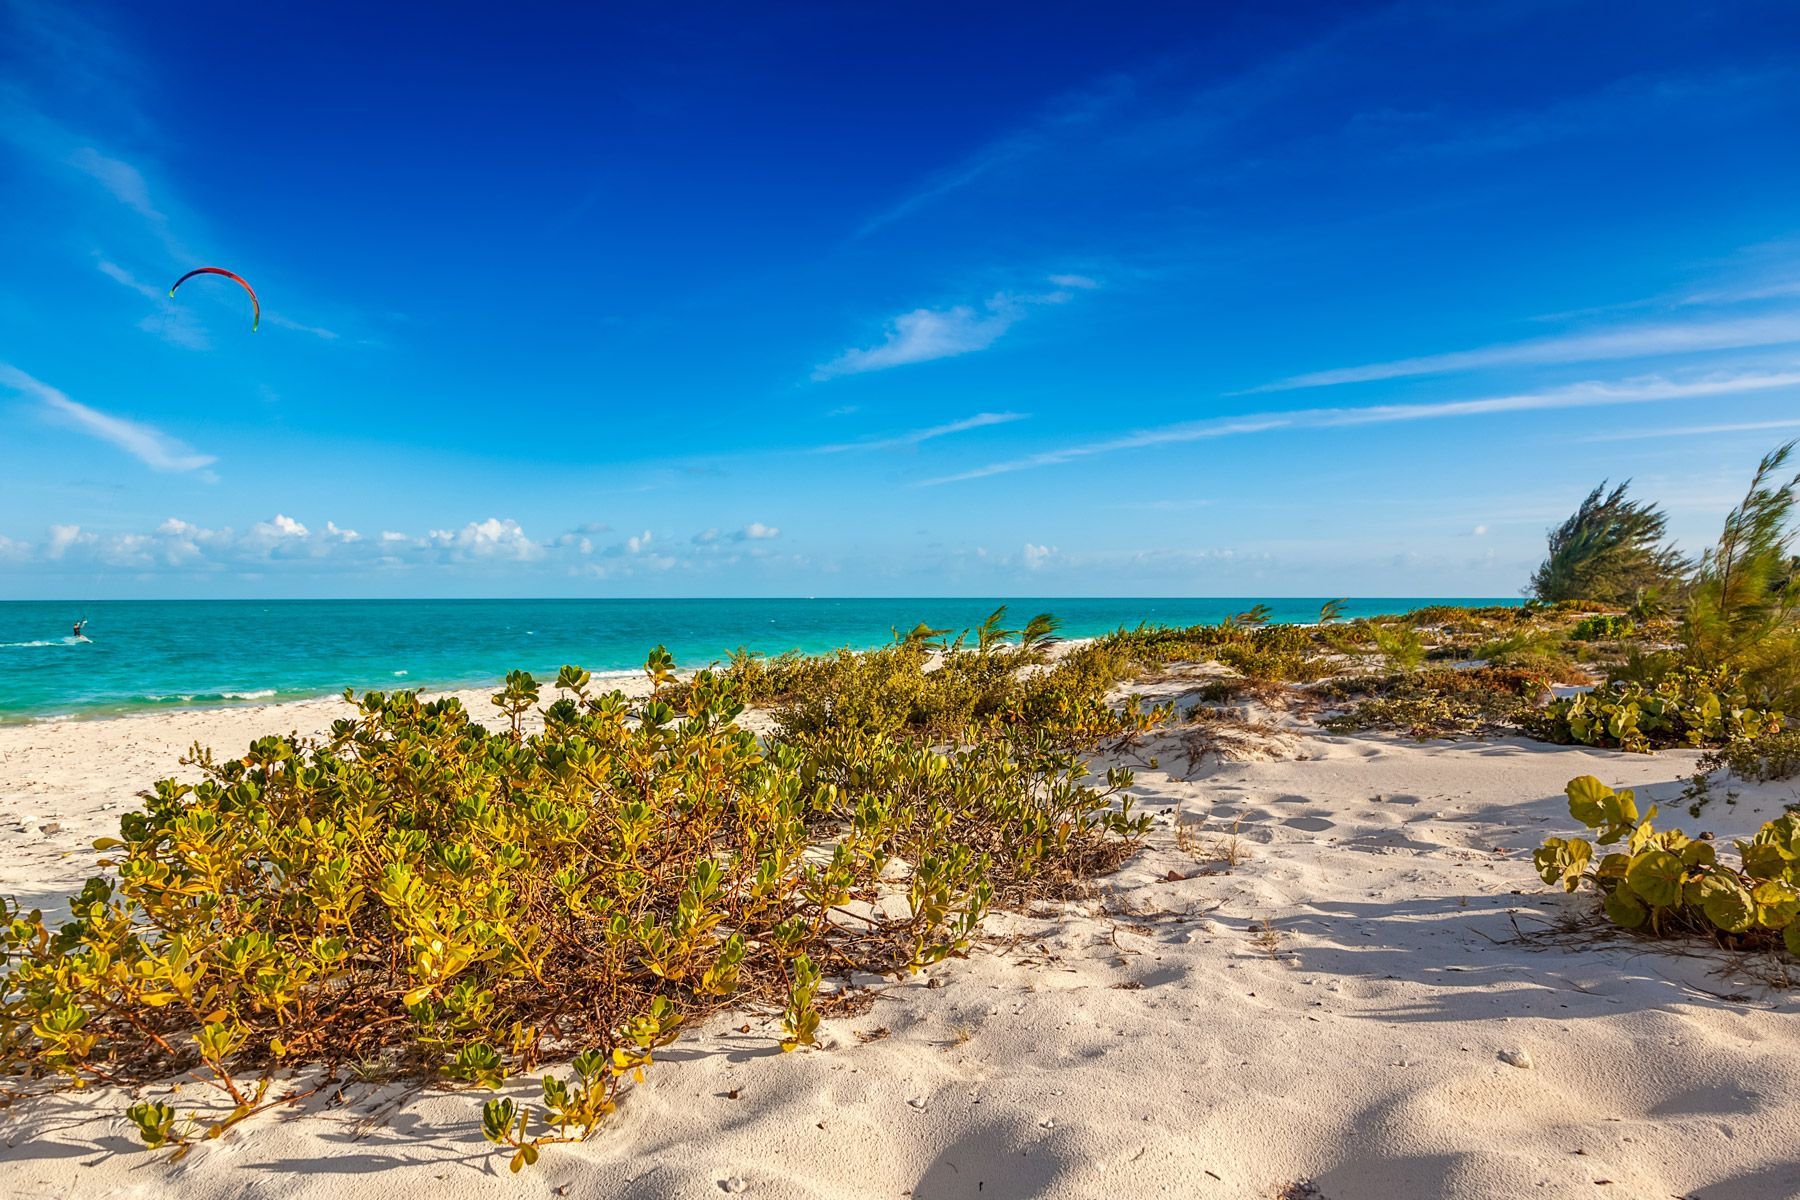 Long Bay Beach Providenciales Turks and Caicos